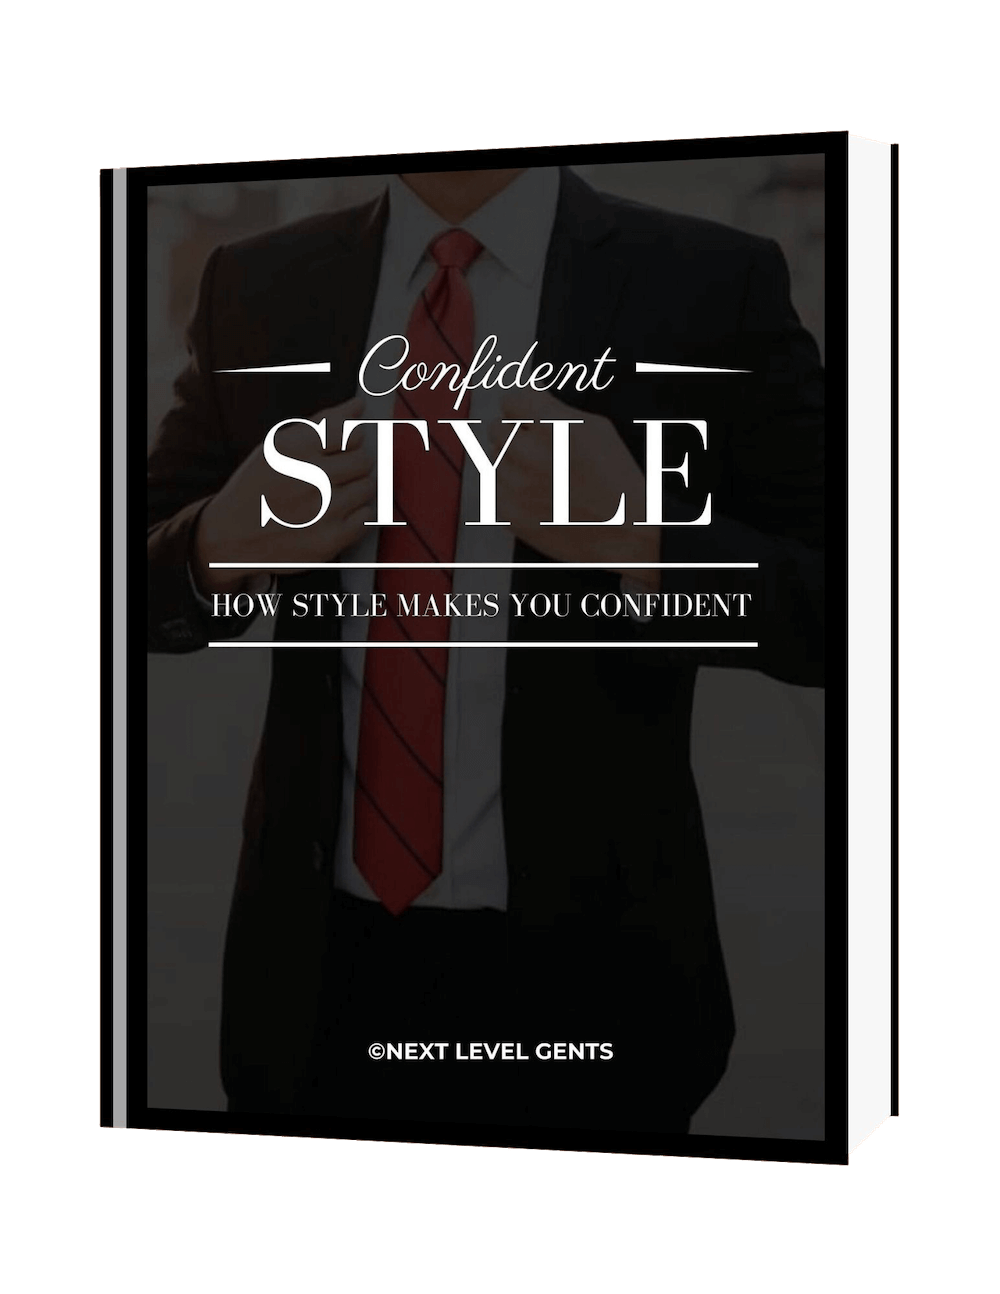 Cover of the Confident Style eBook.